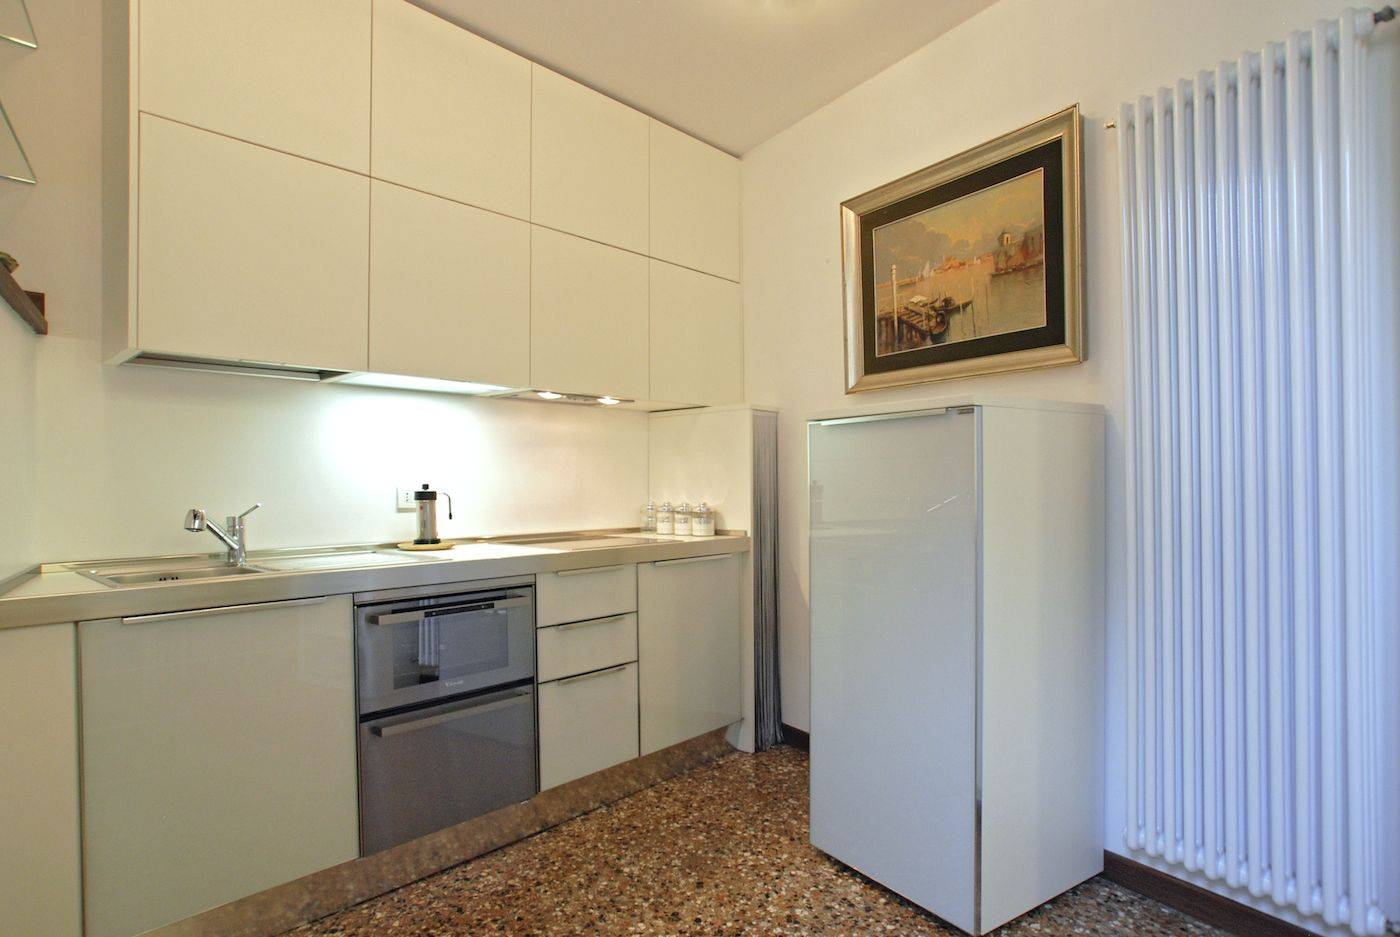 a well equipped and functional kitchen